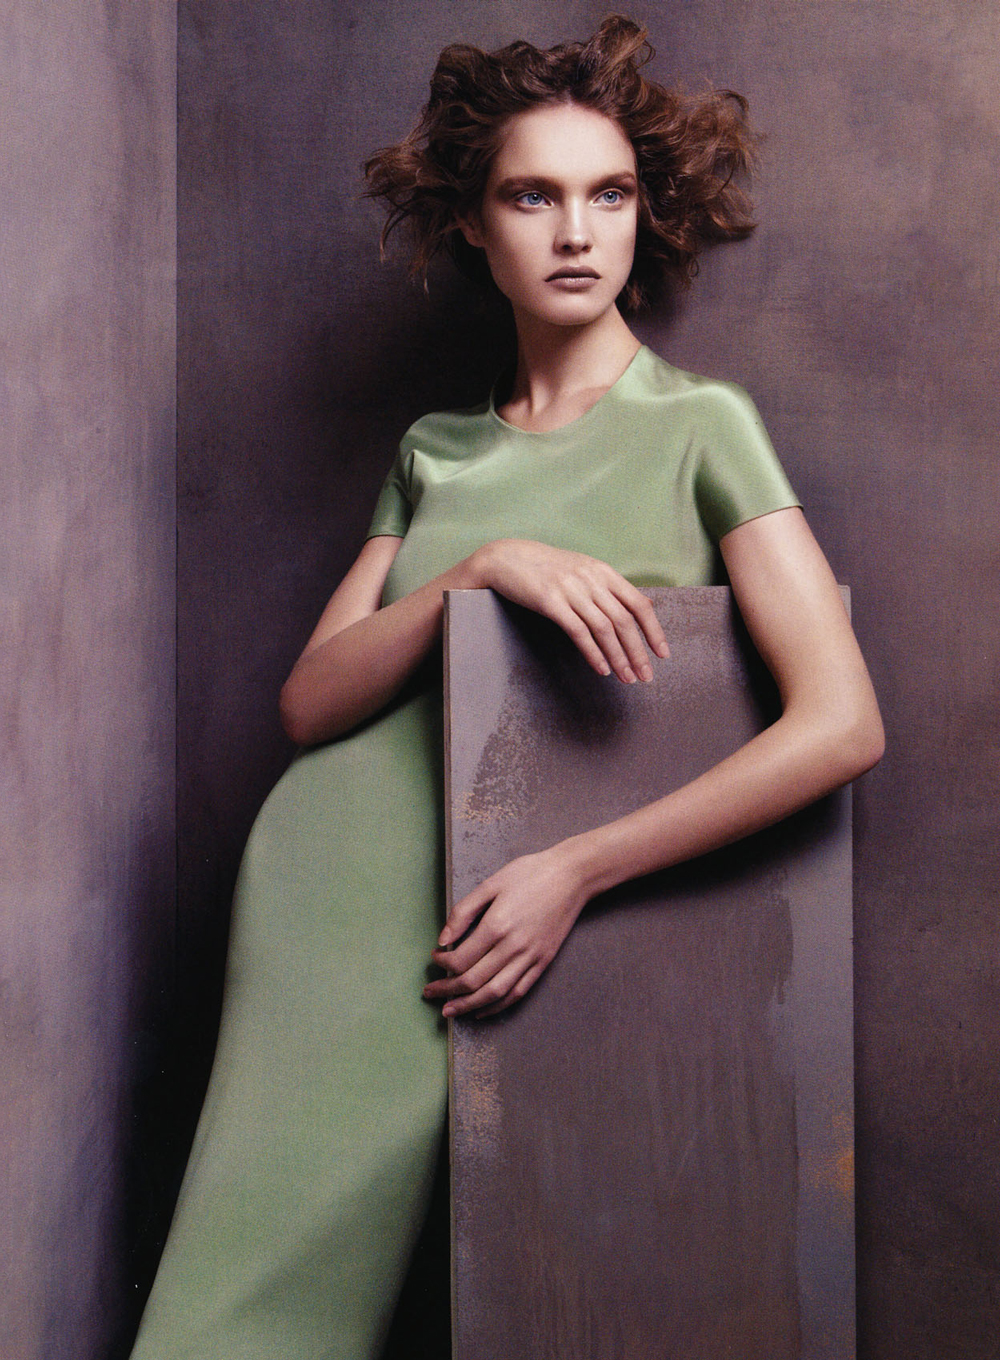 Peerless Natalia Vodianova wearing Calvin Klein in Vogue US January 2008 (photography: Steven Meisel, styling: Grace Coddington) via www.fashionedbylove.co.uk